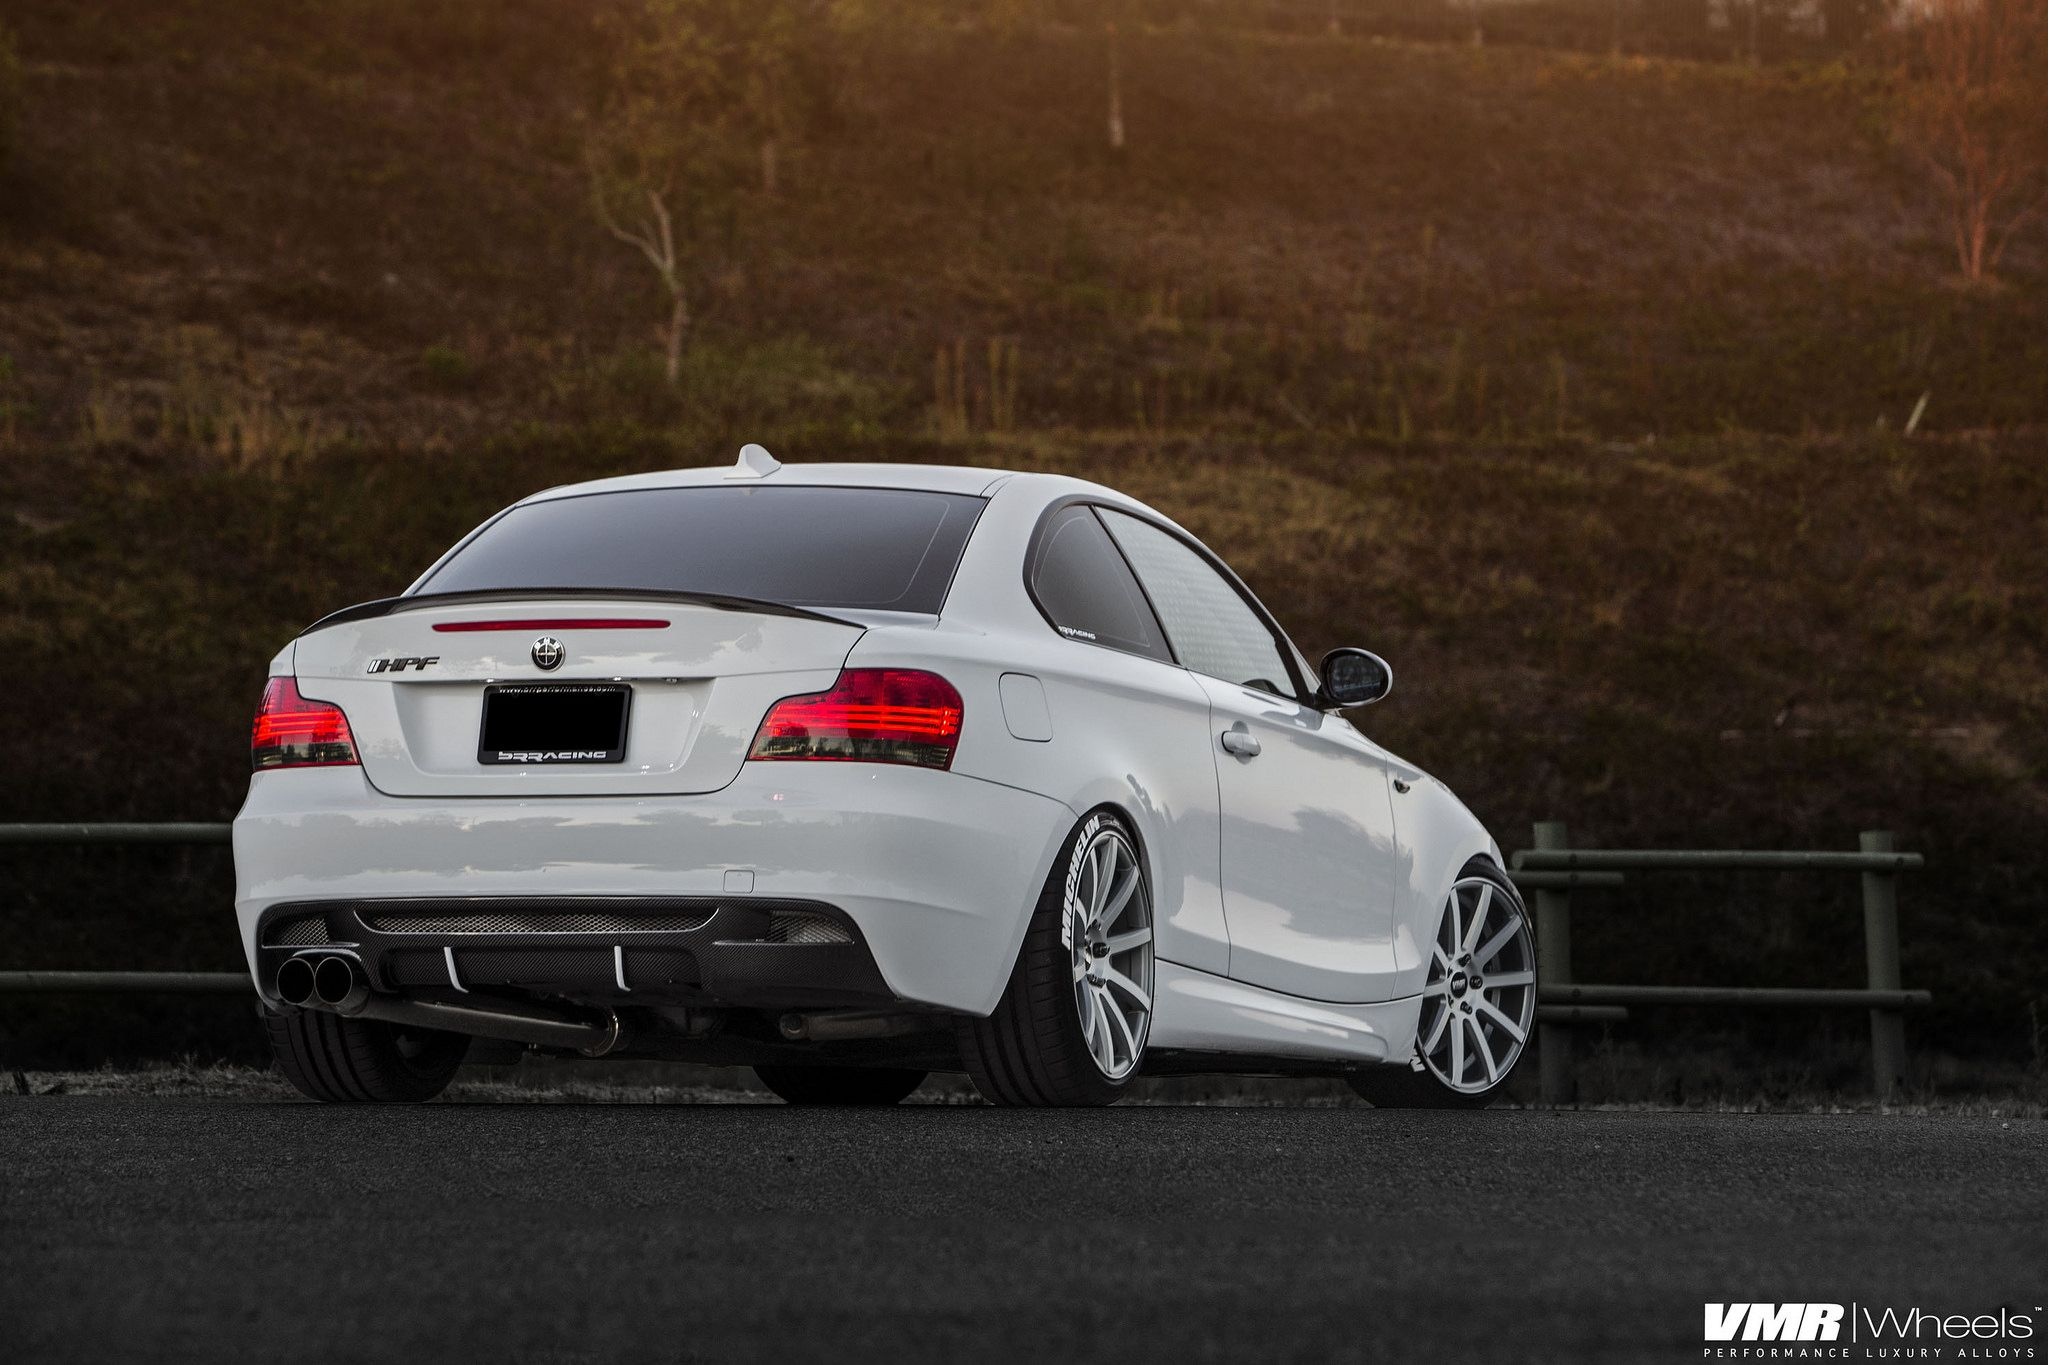 Pin By Willem Bouwer On Bmw 135i Coupe Bmw Classic Cars Bmw